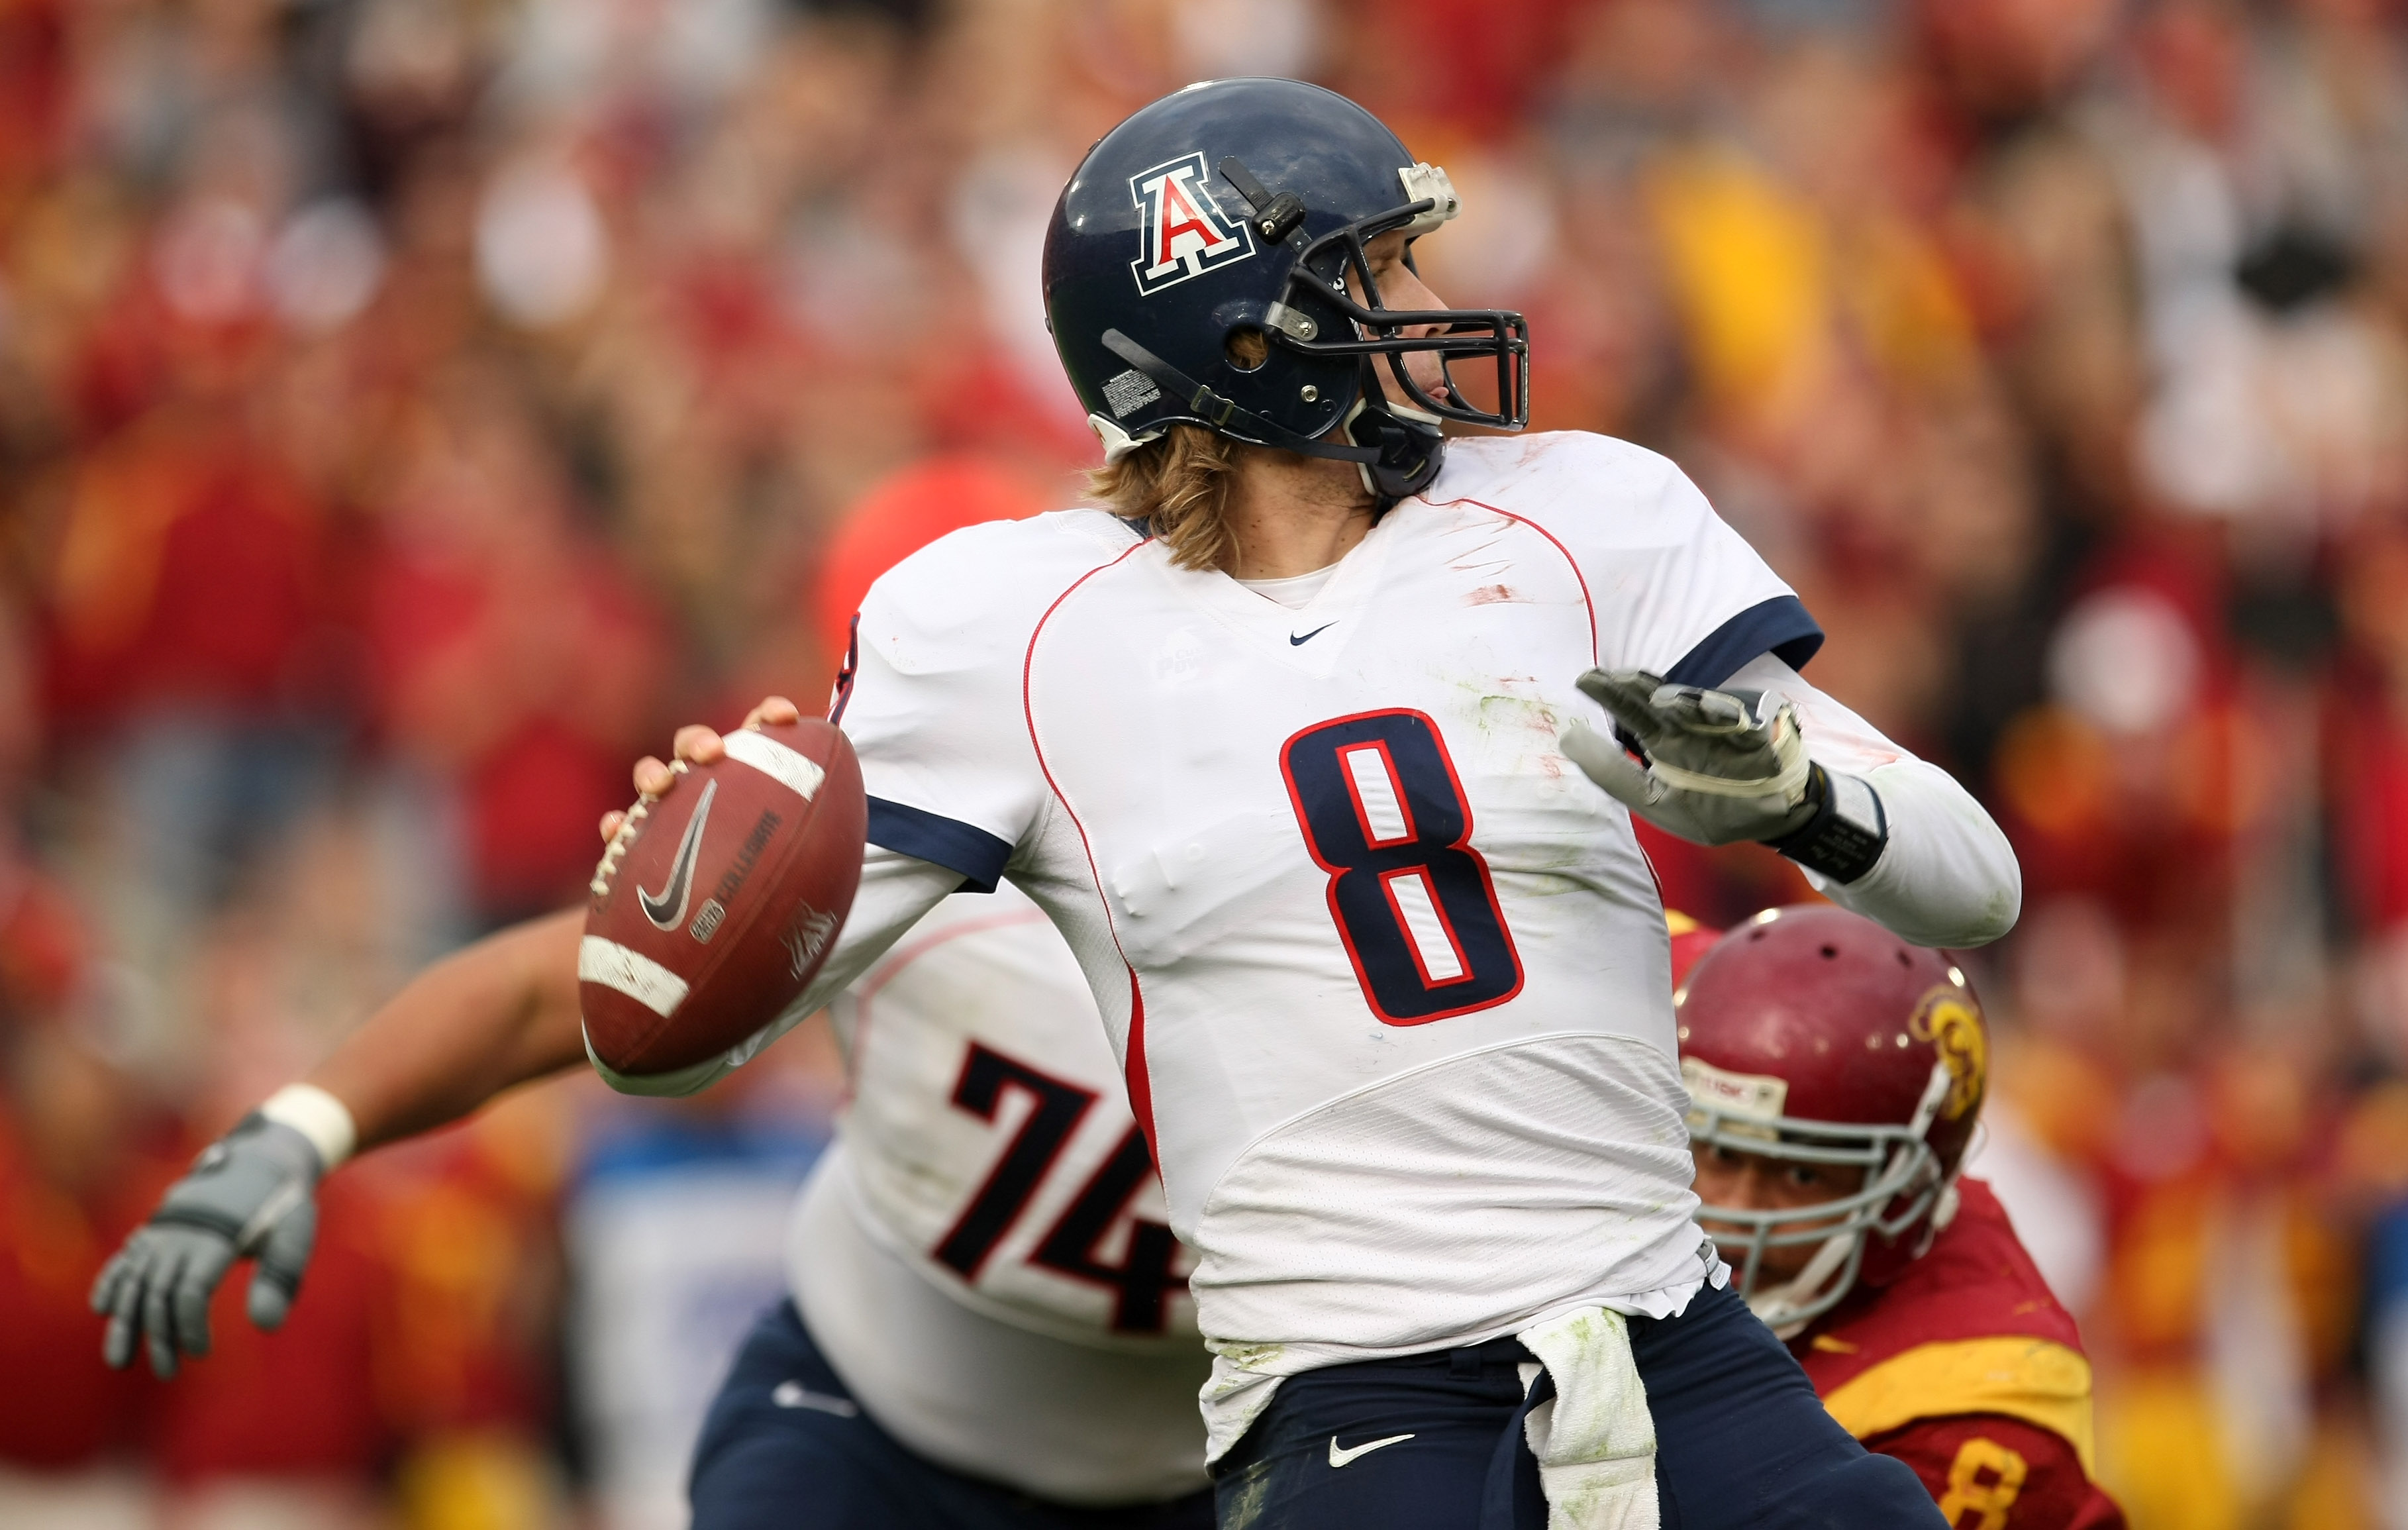 LOS ANGELES, CA - DECEMBER 05:  Quarterback Nick Foles #8 of the Arizona Wildcats throws a pass against the USC Trojans on December 5, 2009 at the Los Angeles Coliseum in Los Angeles, California. Arizona won 21-17.  (Photo by Stephen Dunn/Getty Images)